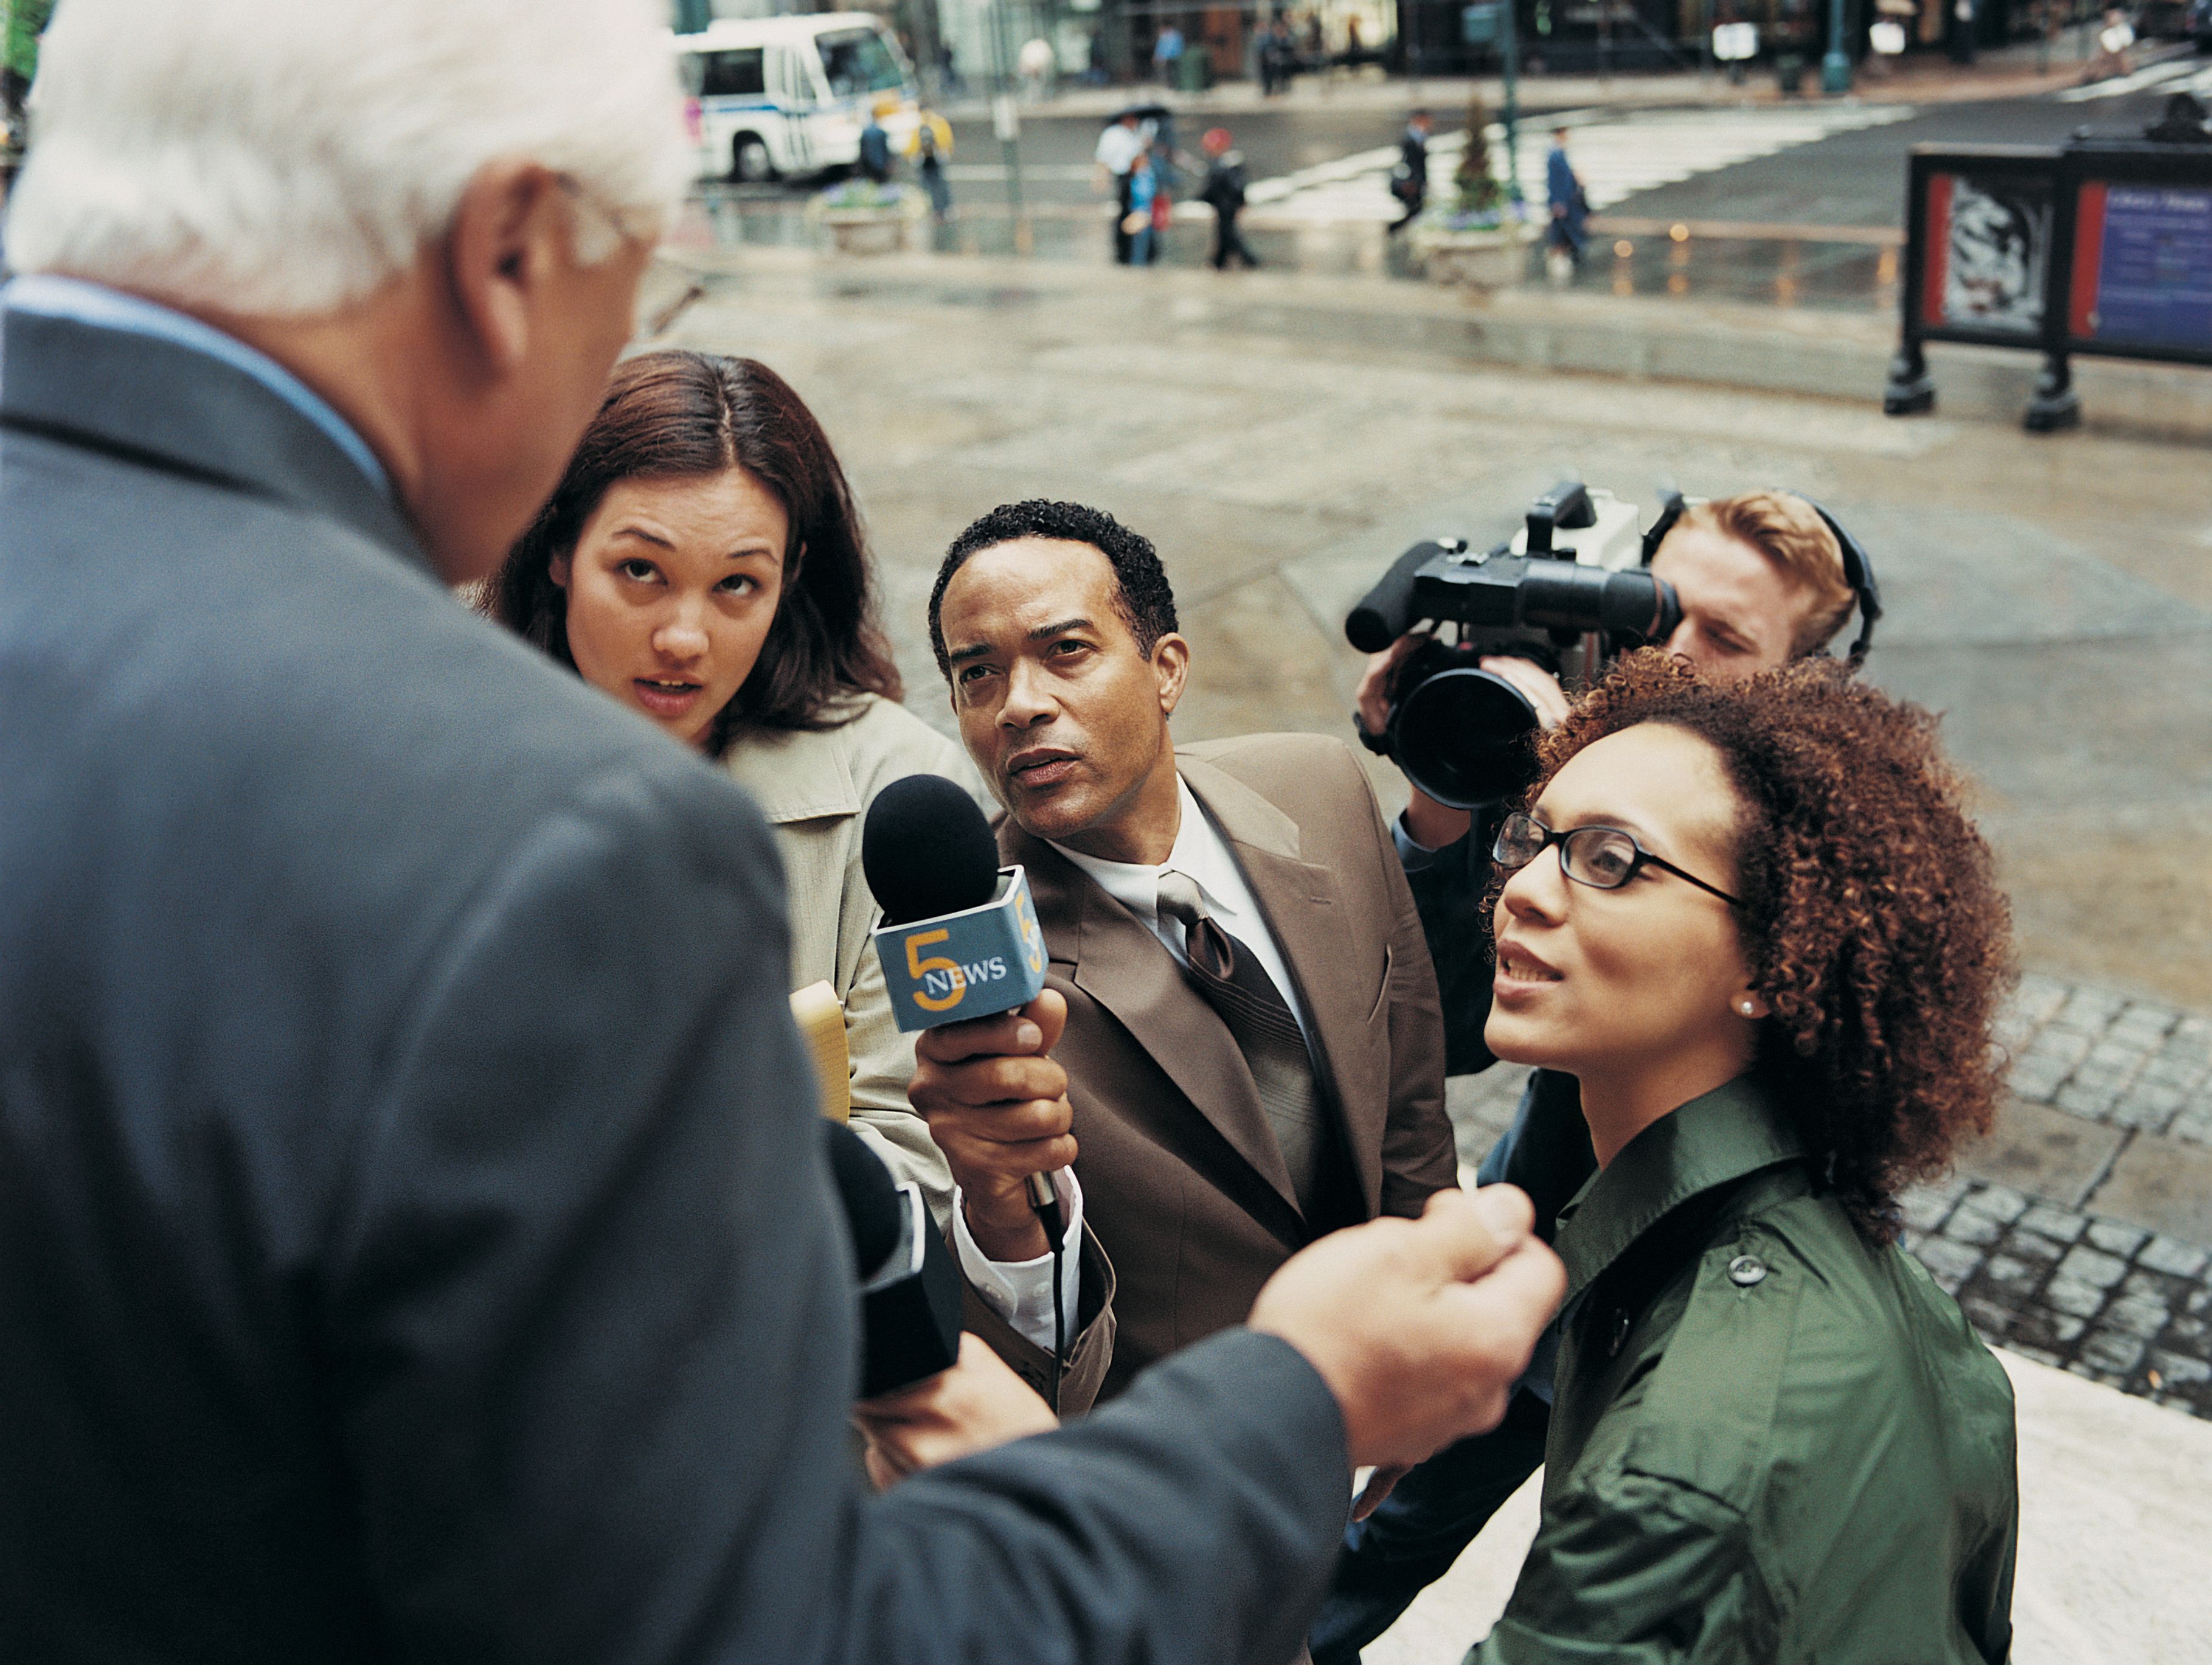 """News Reporters and a TV Cameraman"" by Digital Vision is licensed under CC BY 2.0."